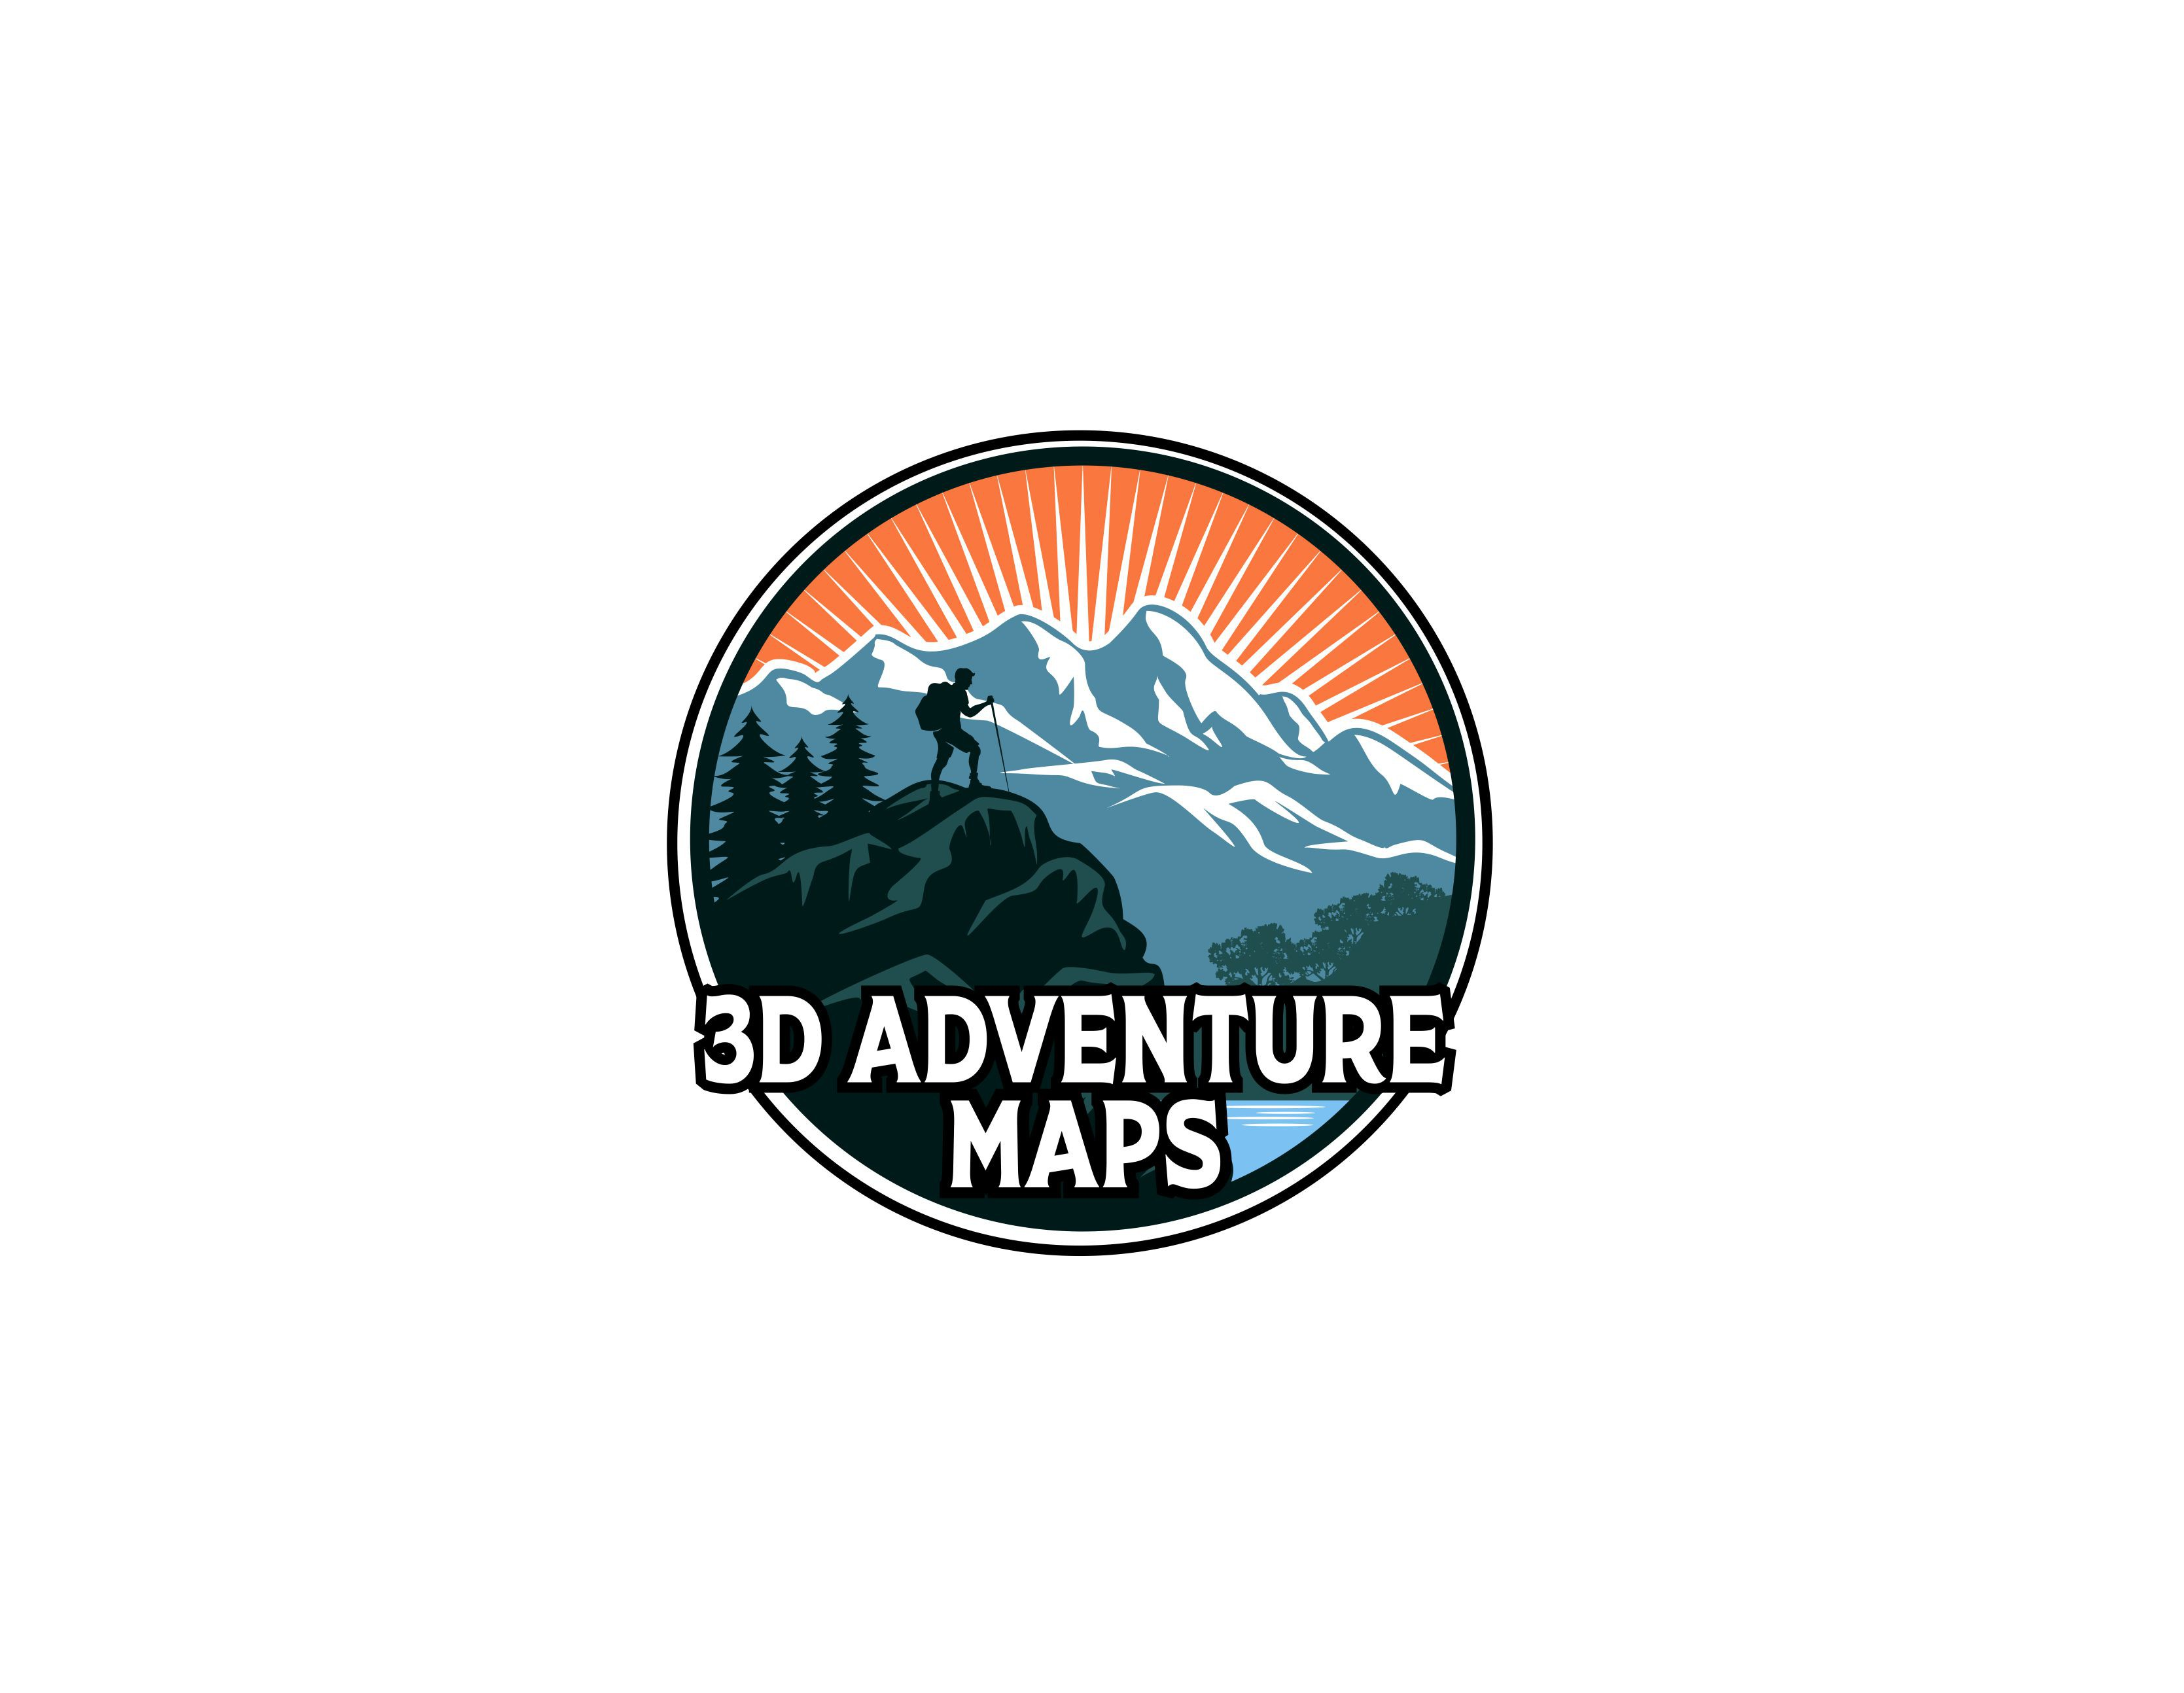 Design a logo for our beautiful 3D terrain maps that appeals to mountain climbers and hikers